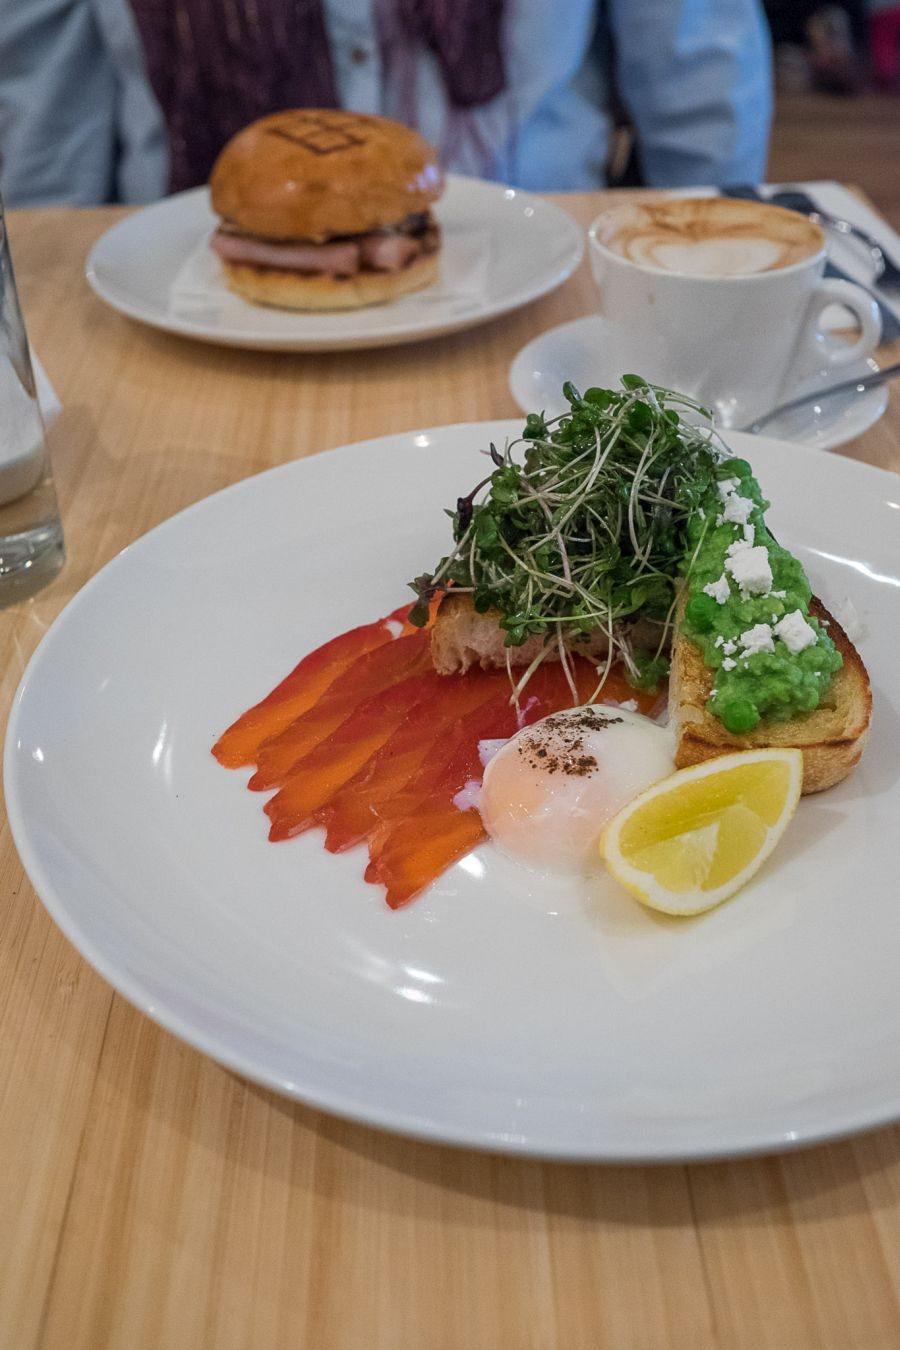 Beetroot cured salmon, crushed peas, feta, 64 degree egg, fresh herb salad, lemon (AU$20.50)